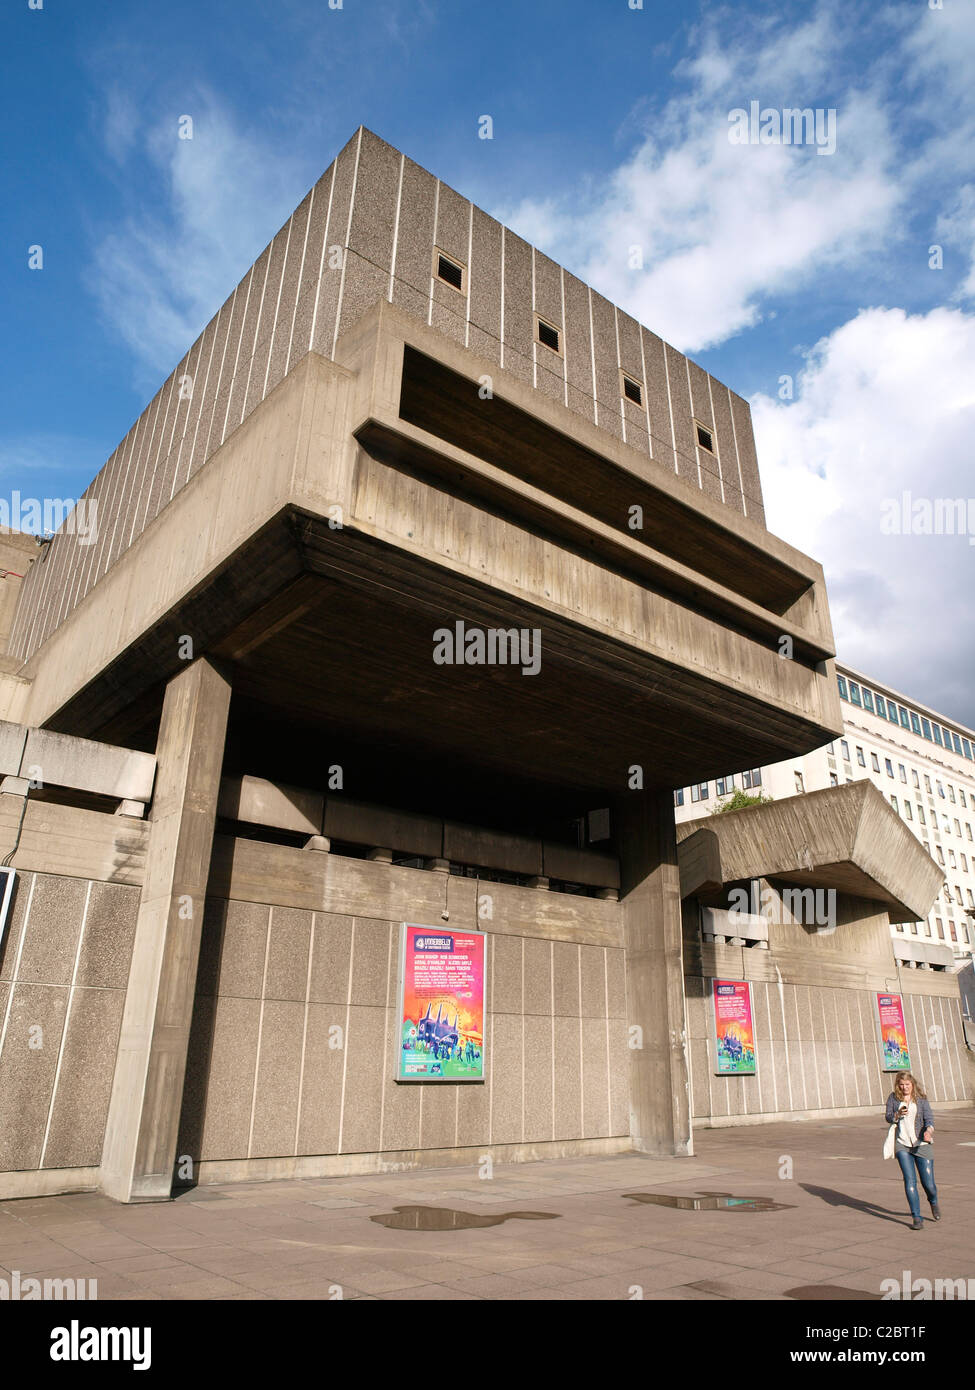 Hayward Gallery, The Southbank Lambeth London United Kingdom Great Britain - Stock Image